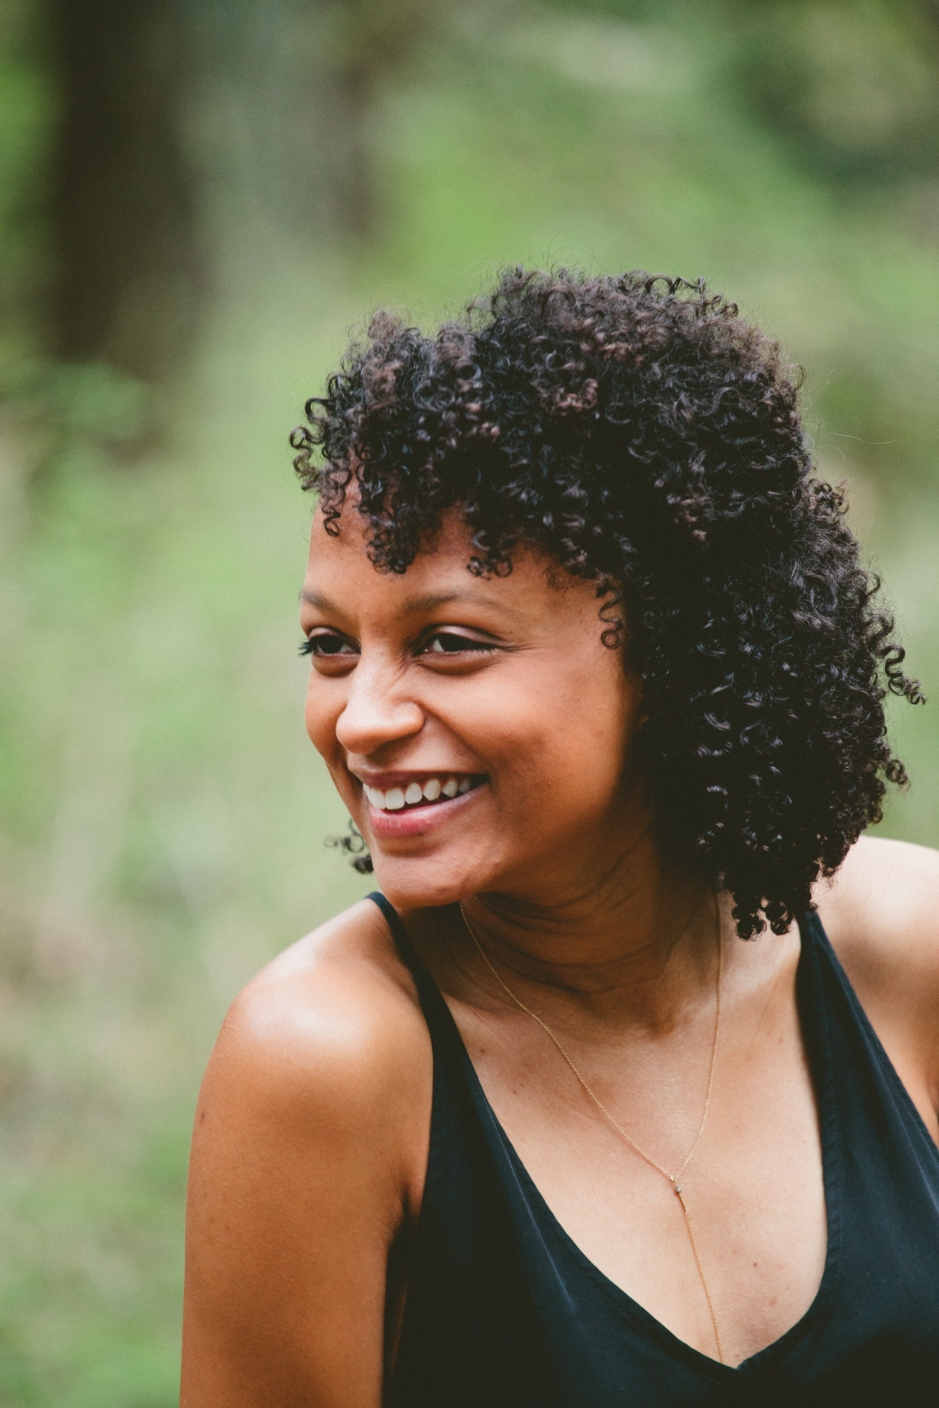 Woman in black, sleeveless top and curly hair, turning her head and smiling, in front of unfocused nature background